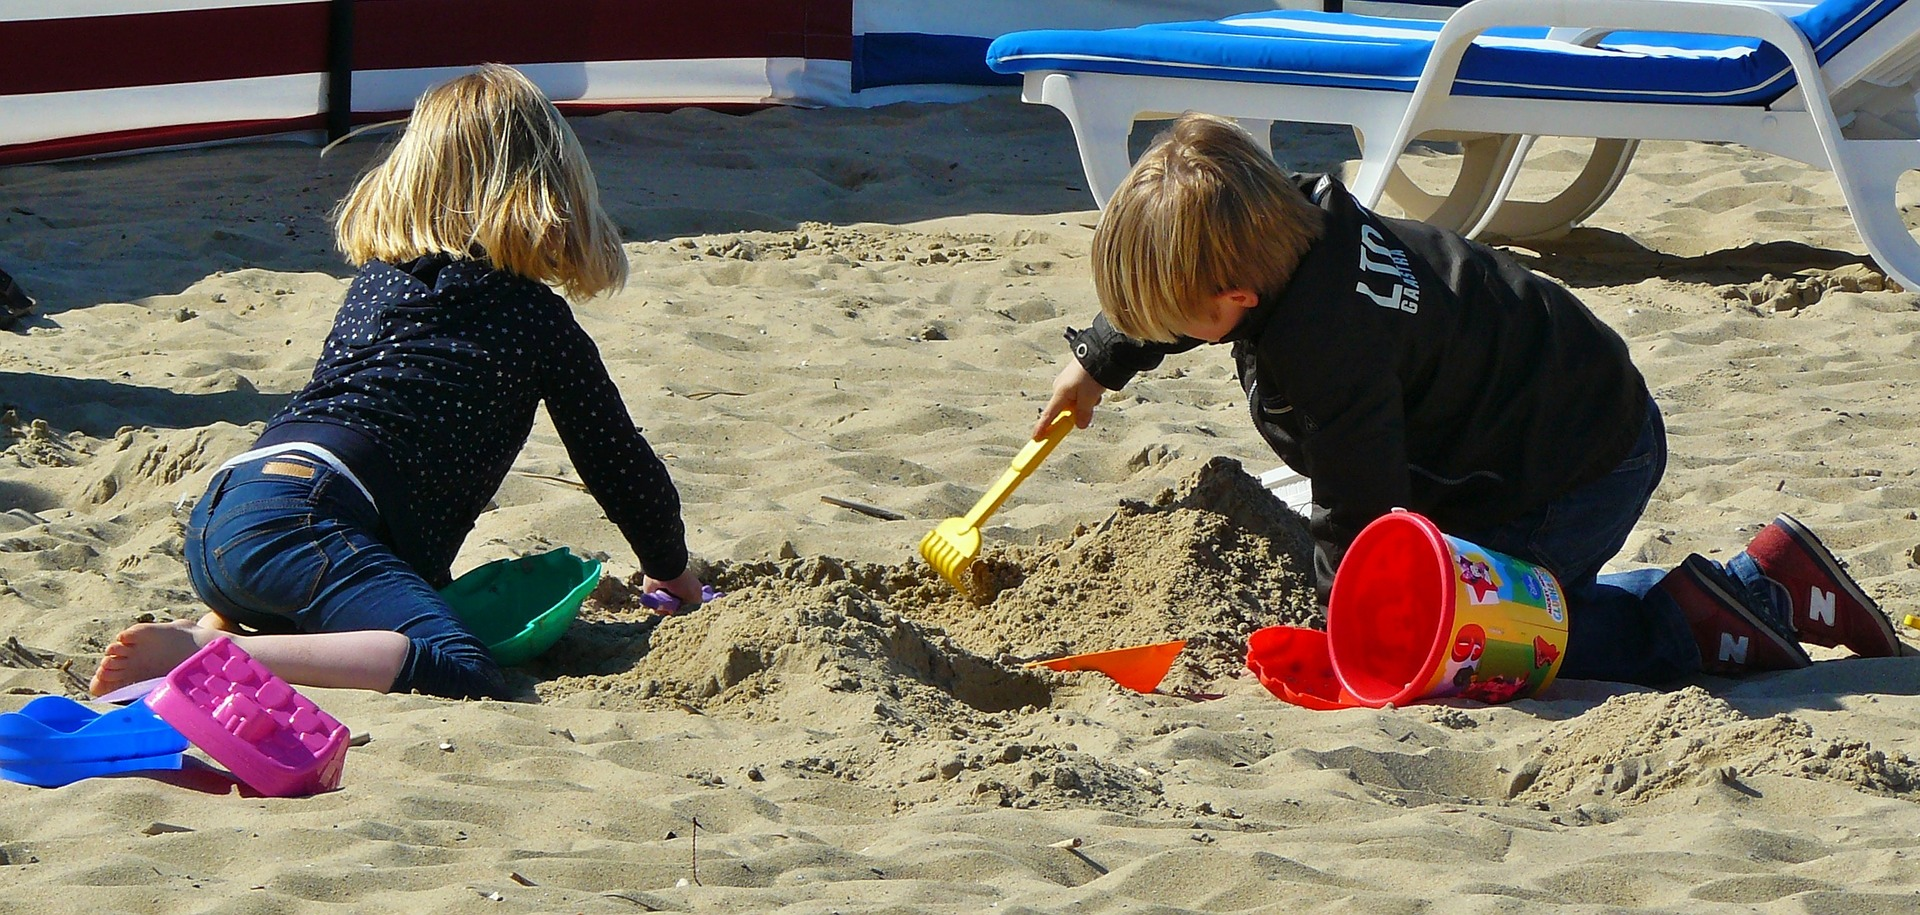 Children playing with buckets and spades on a sandy beach